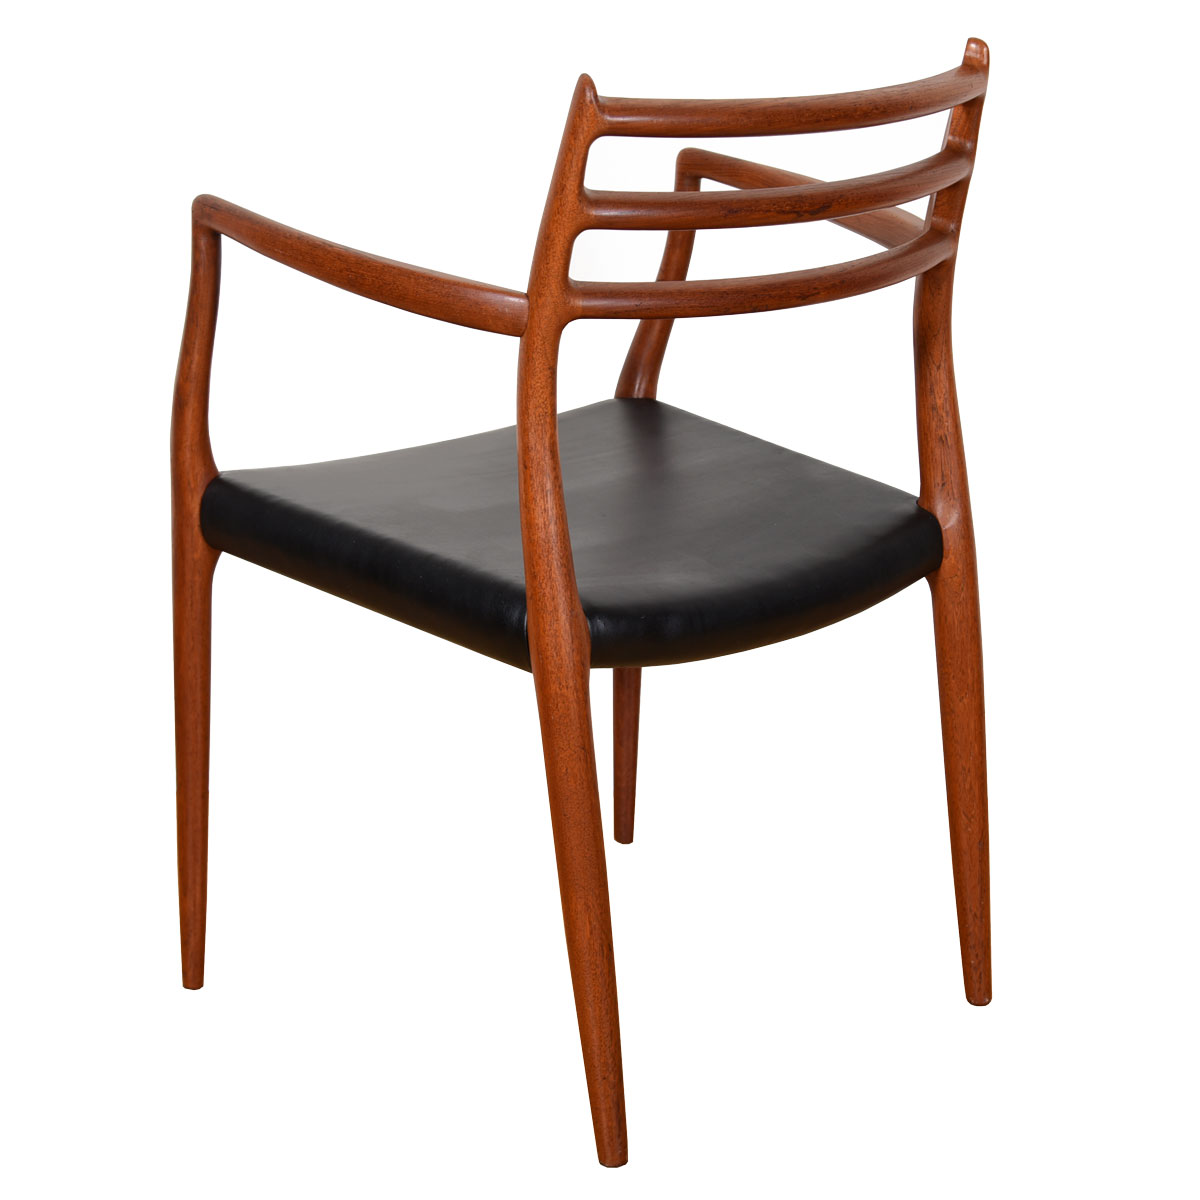 Set of 4 Niels Moller Teak Dining Chairs (2 Arm + 2 Side)